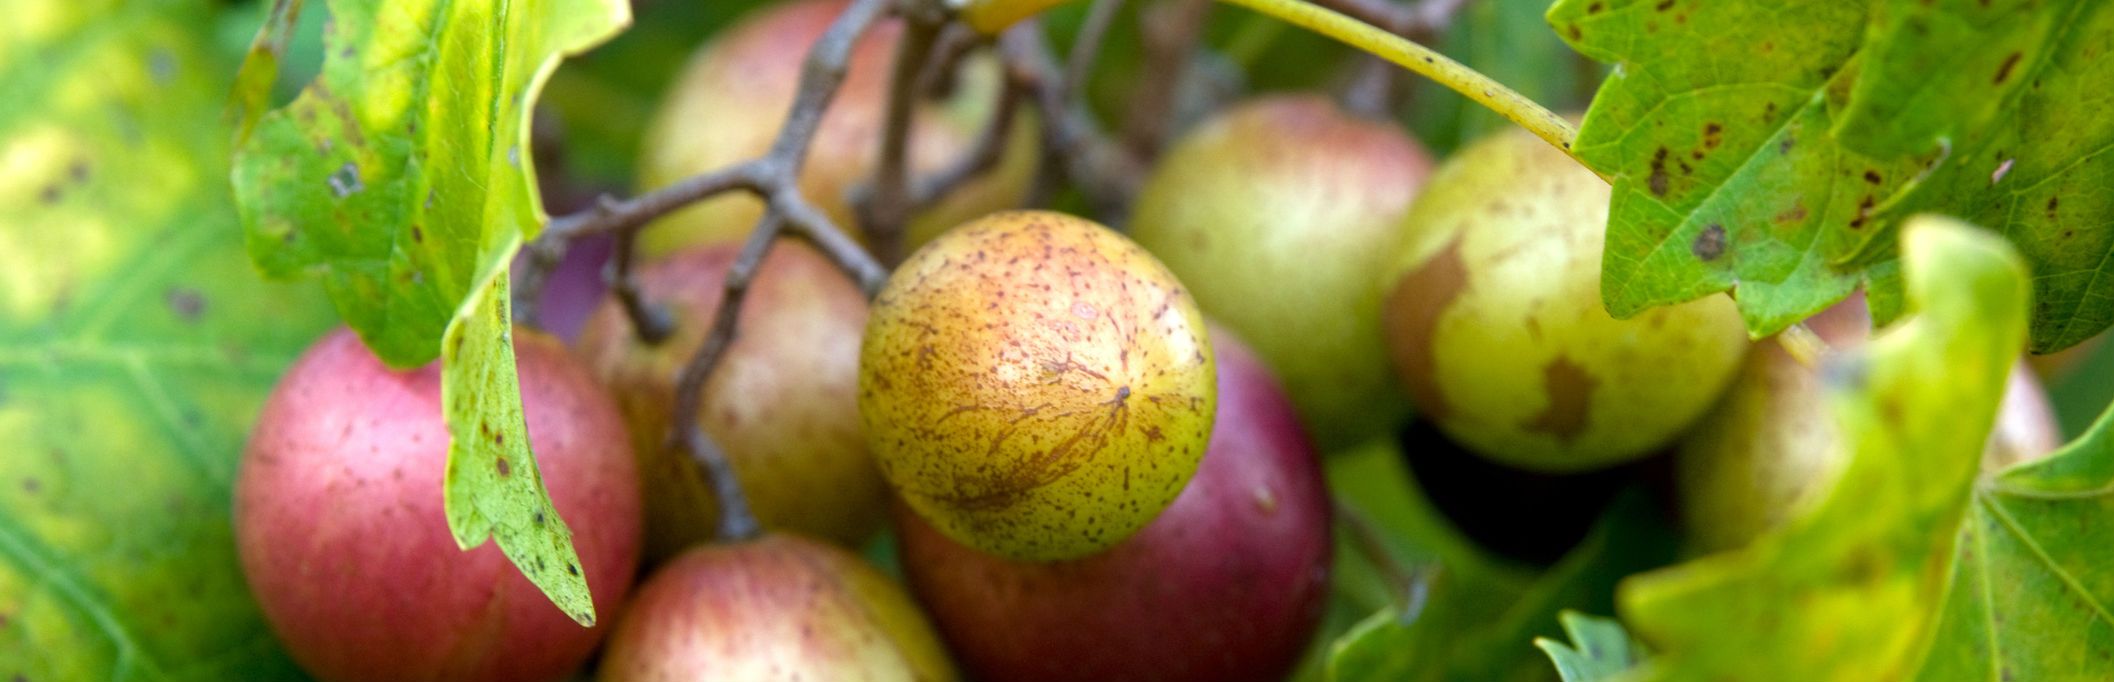 Incorporating fruits tress into rural landscapes